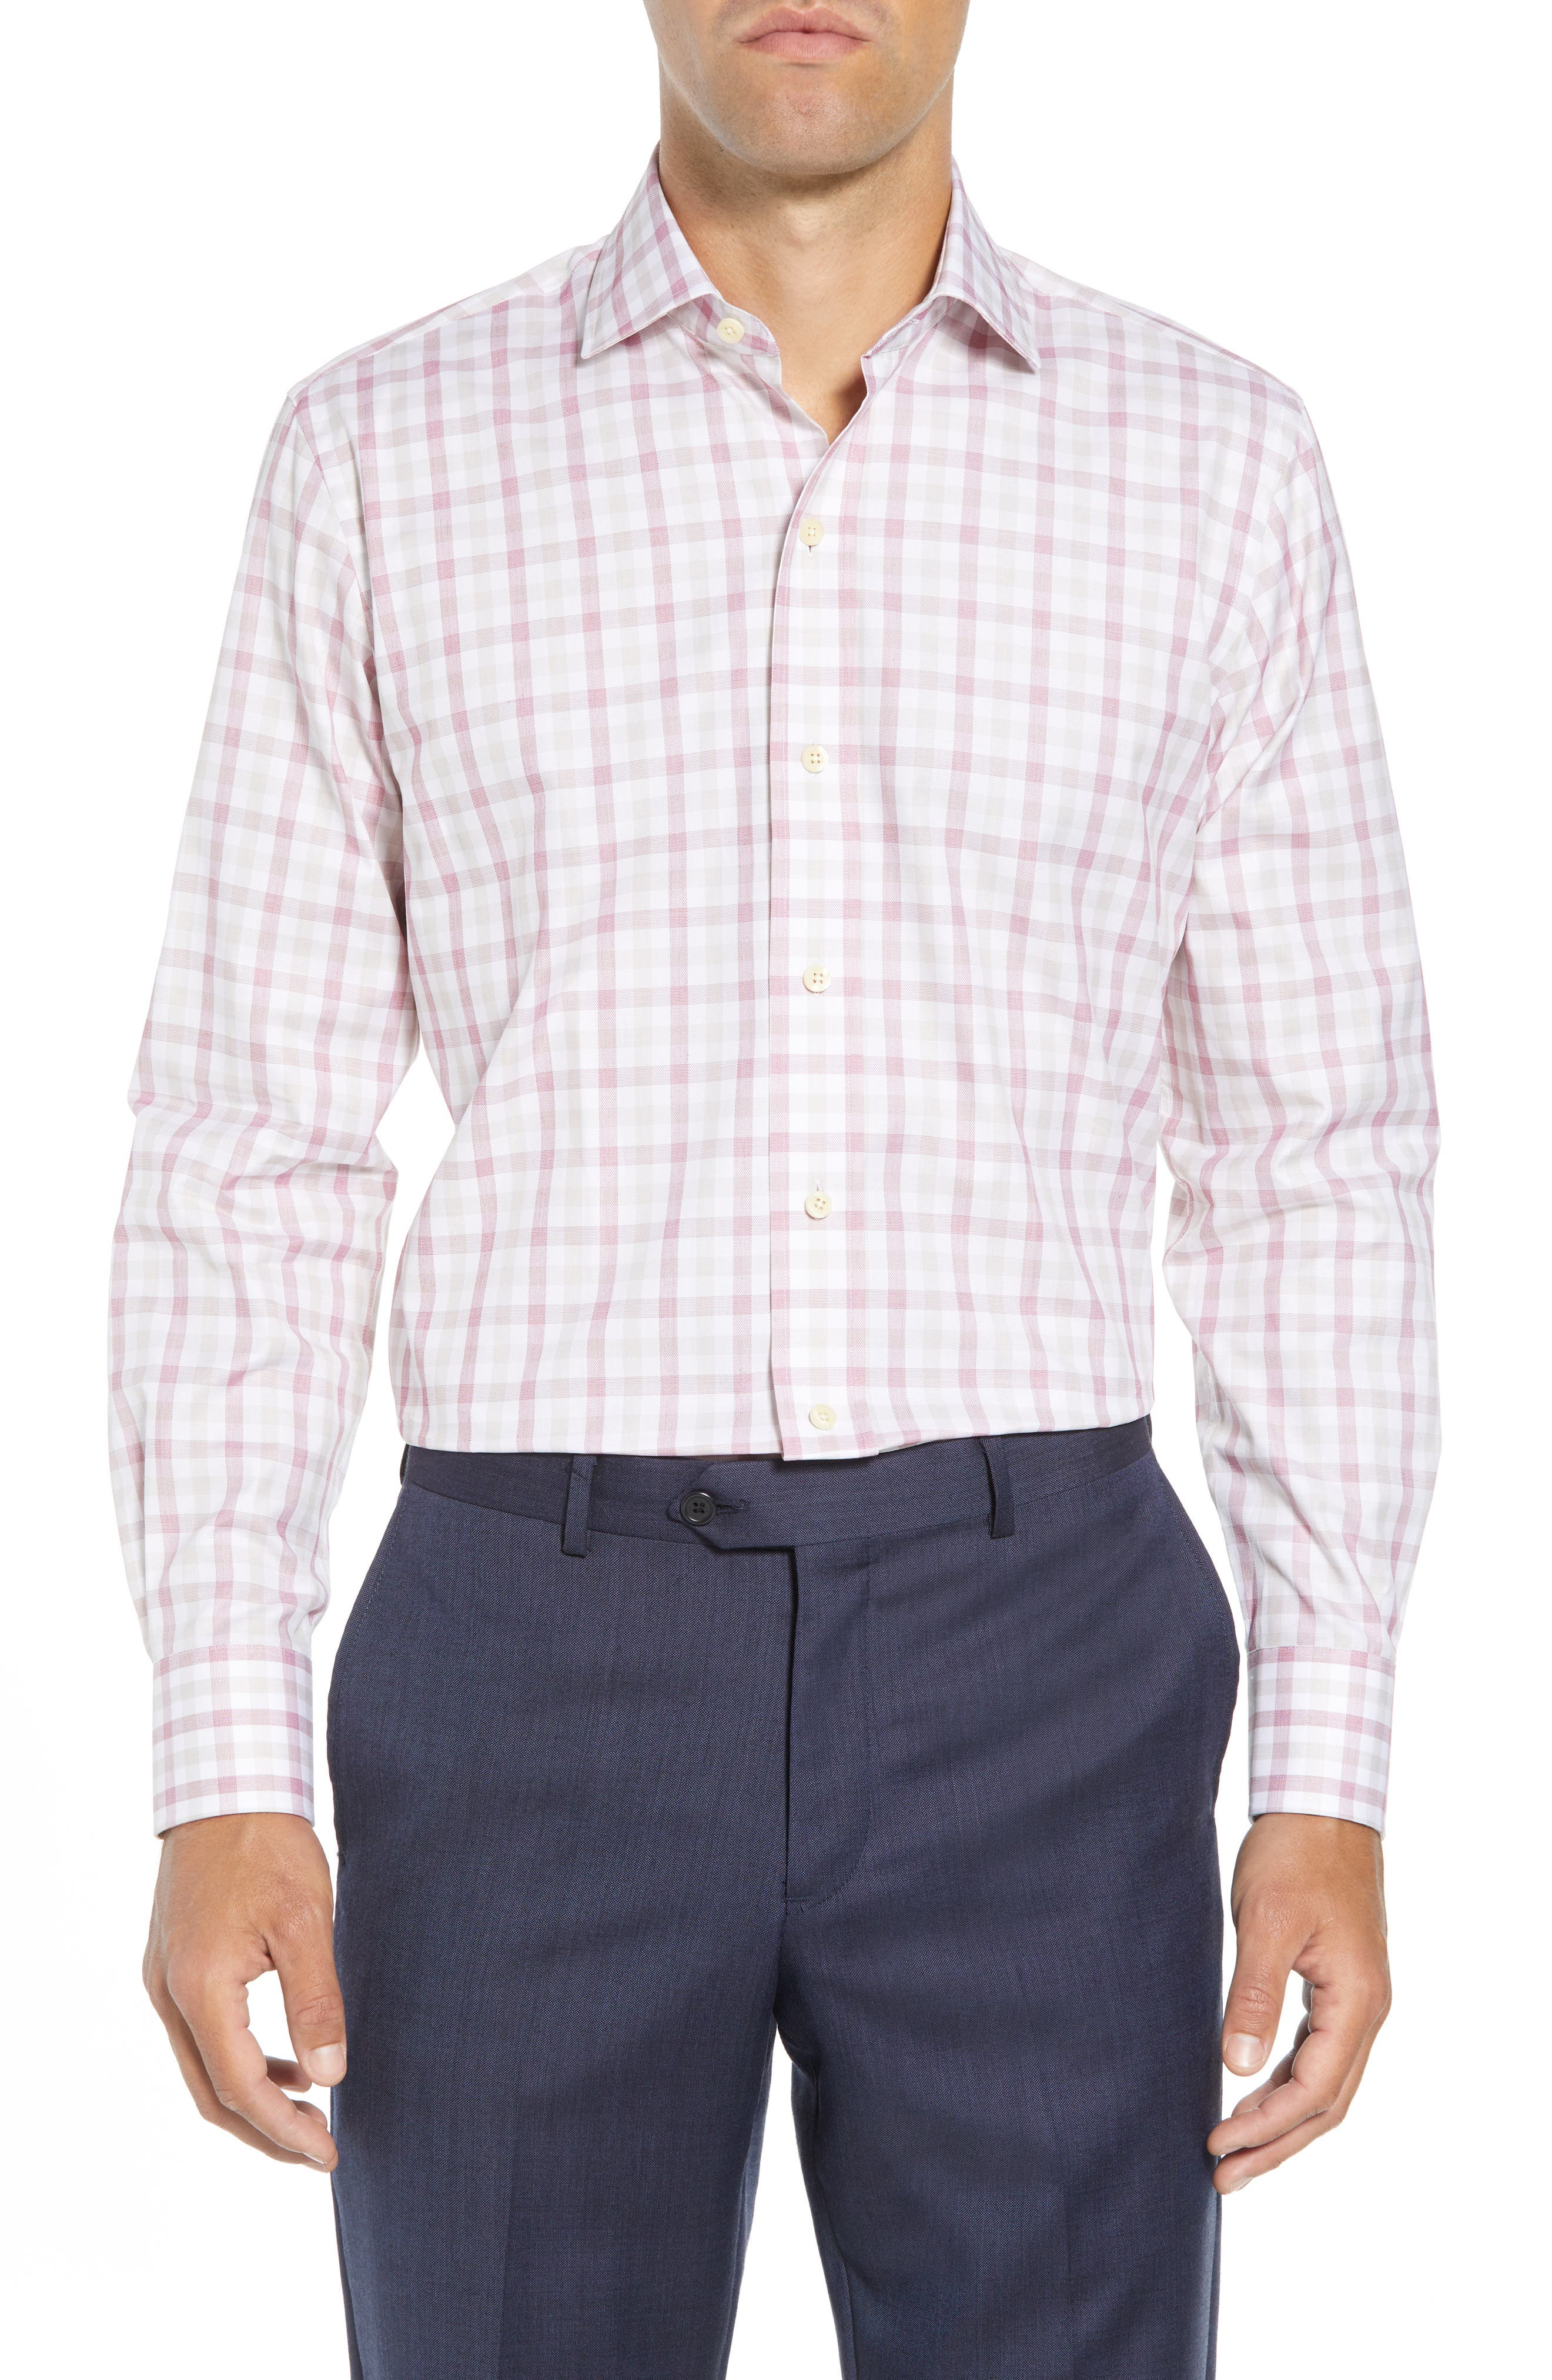 Corbly Trim Fit Check Dress Shirt,                         Main,                         color, RED